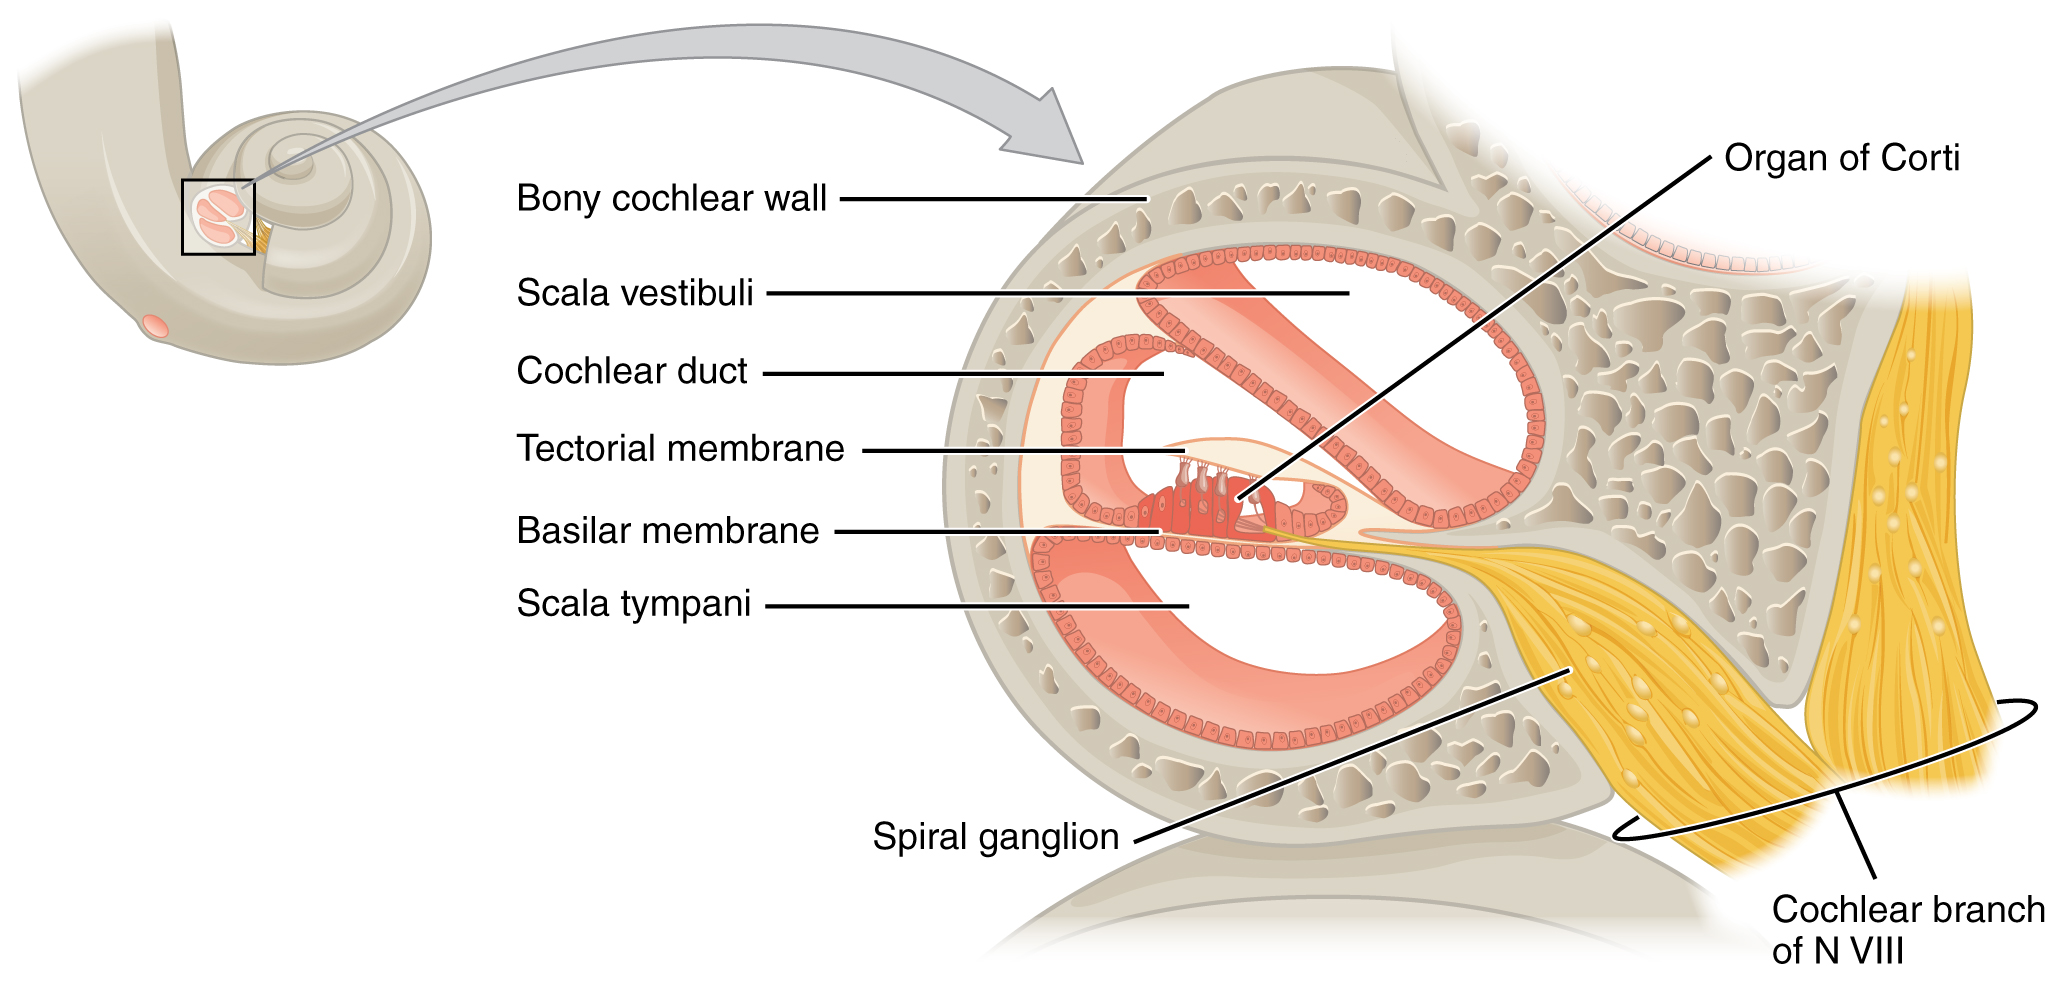 This diagram shows the structure of the cochlea in the inner ear.